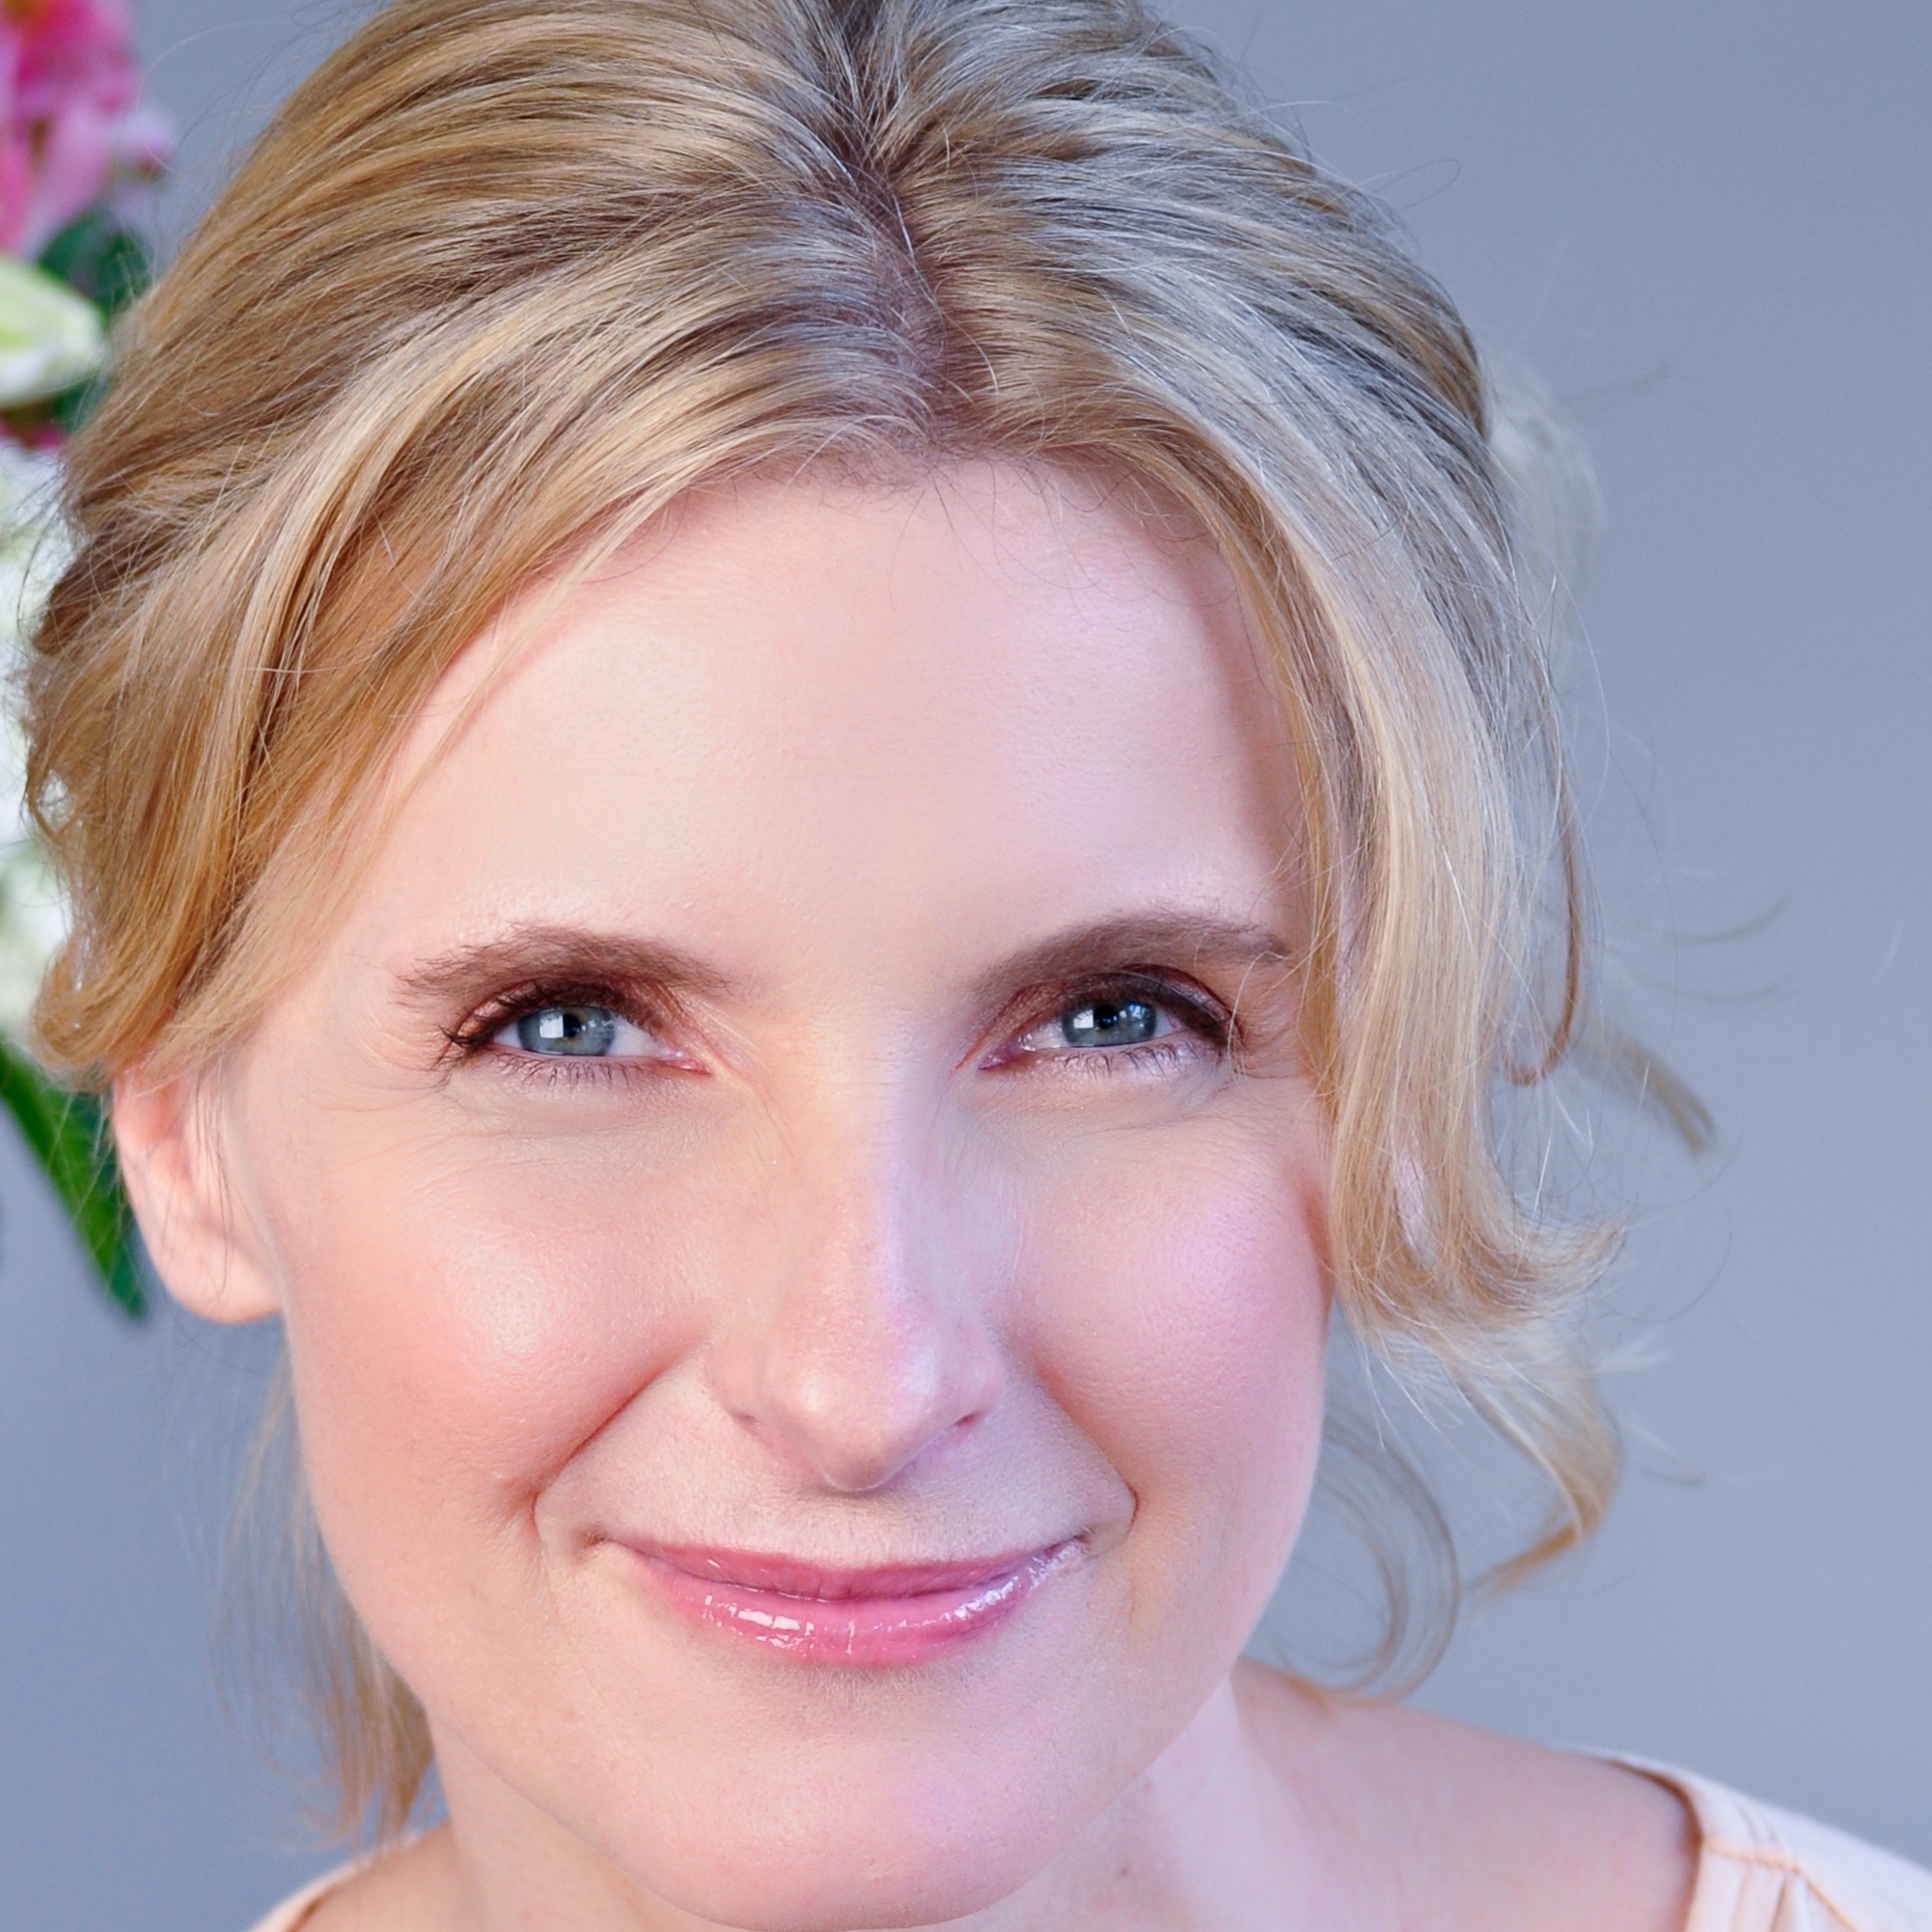 Elizabeth Gilbert is the author of the memoir Eat, Pray, Love.